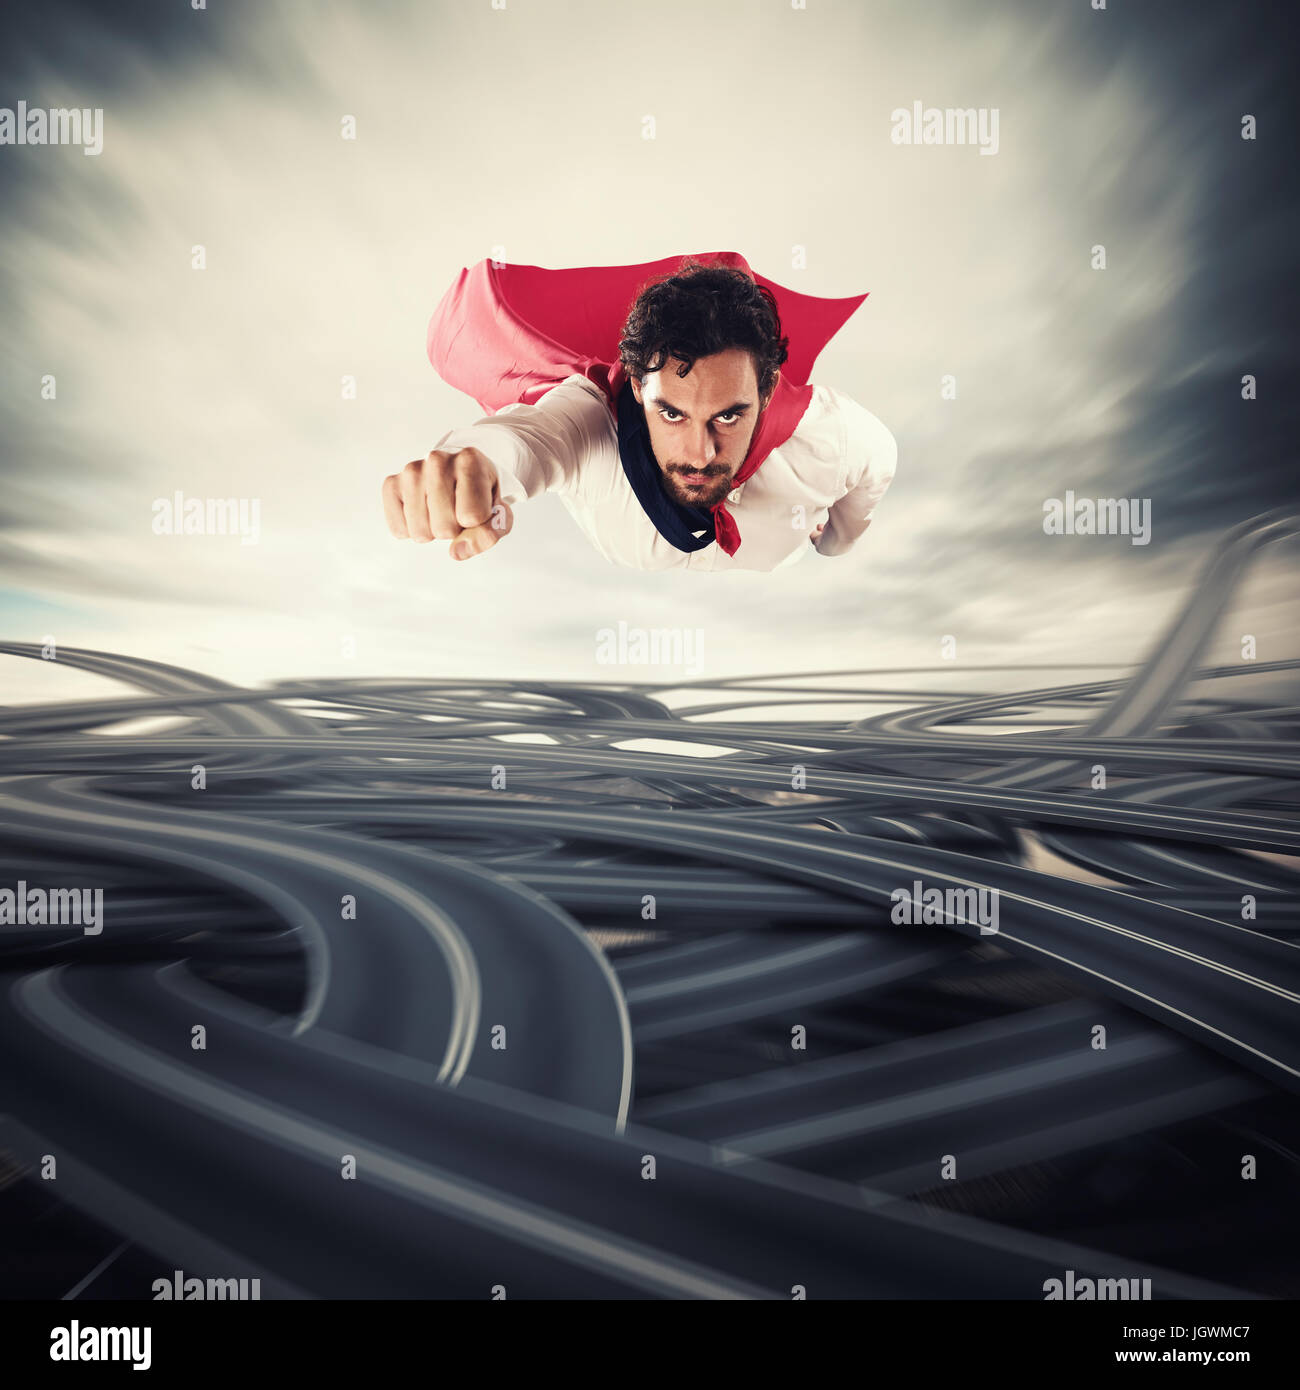 Overcome the difficulties. Concept of success and breakthrough - Stock Image